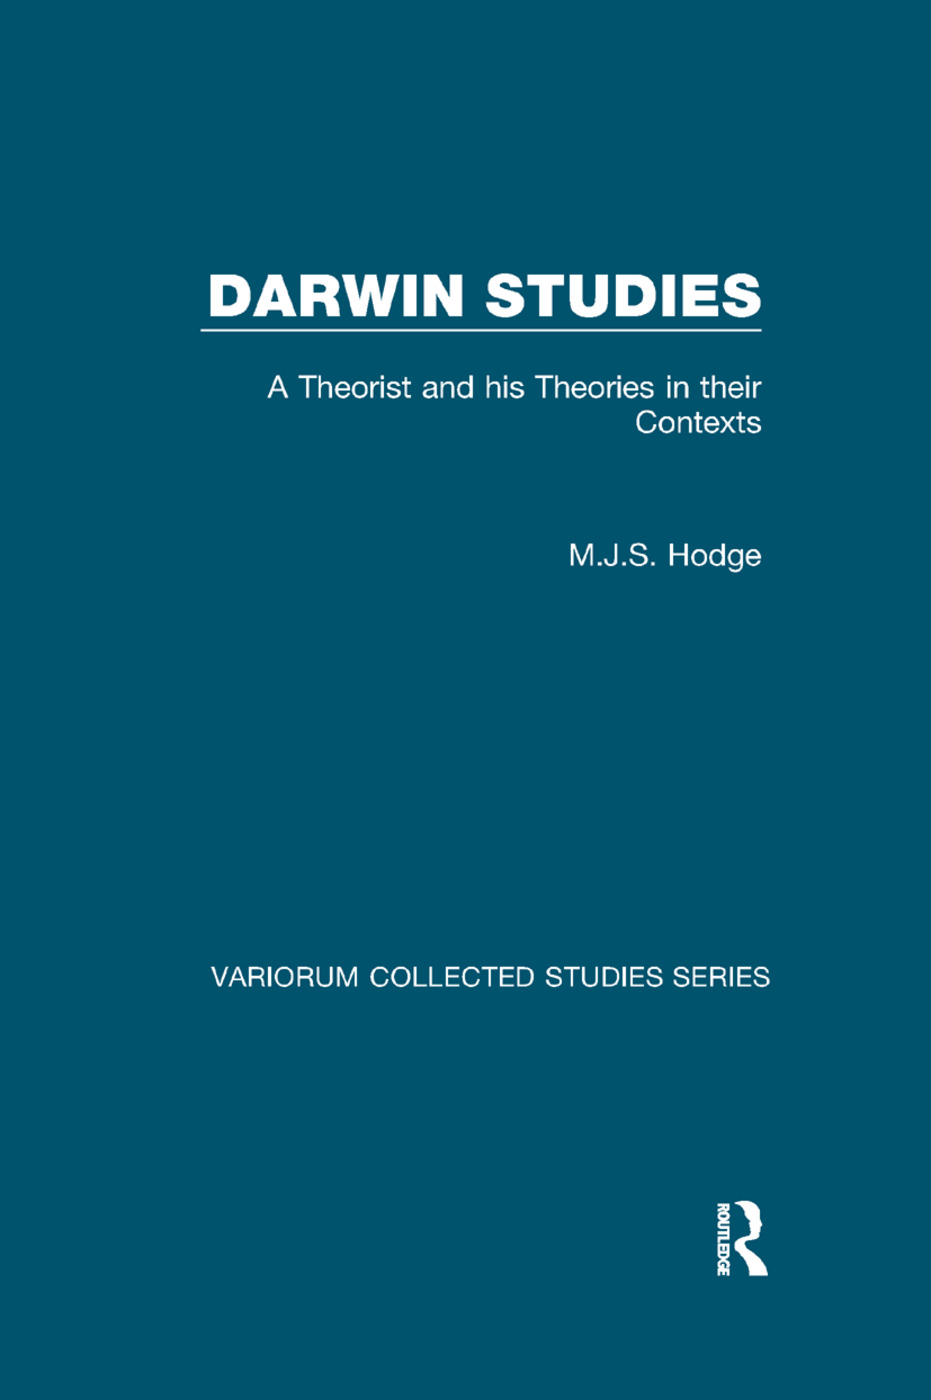 Darwin Studies: A Theorist and his Theories in their Contexts book cover